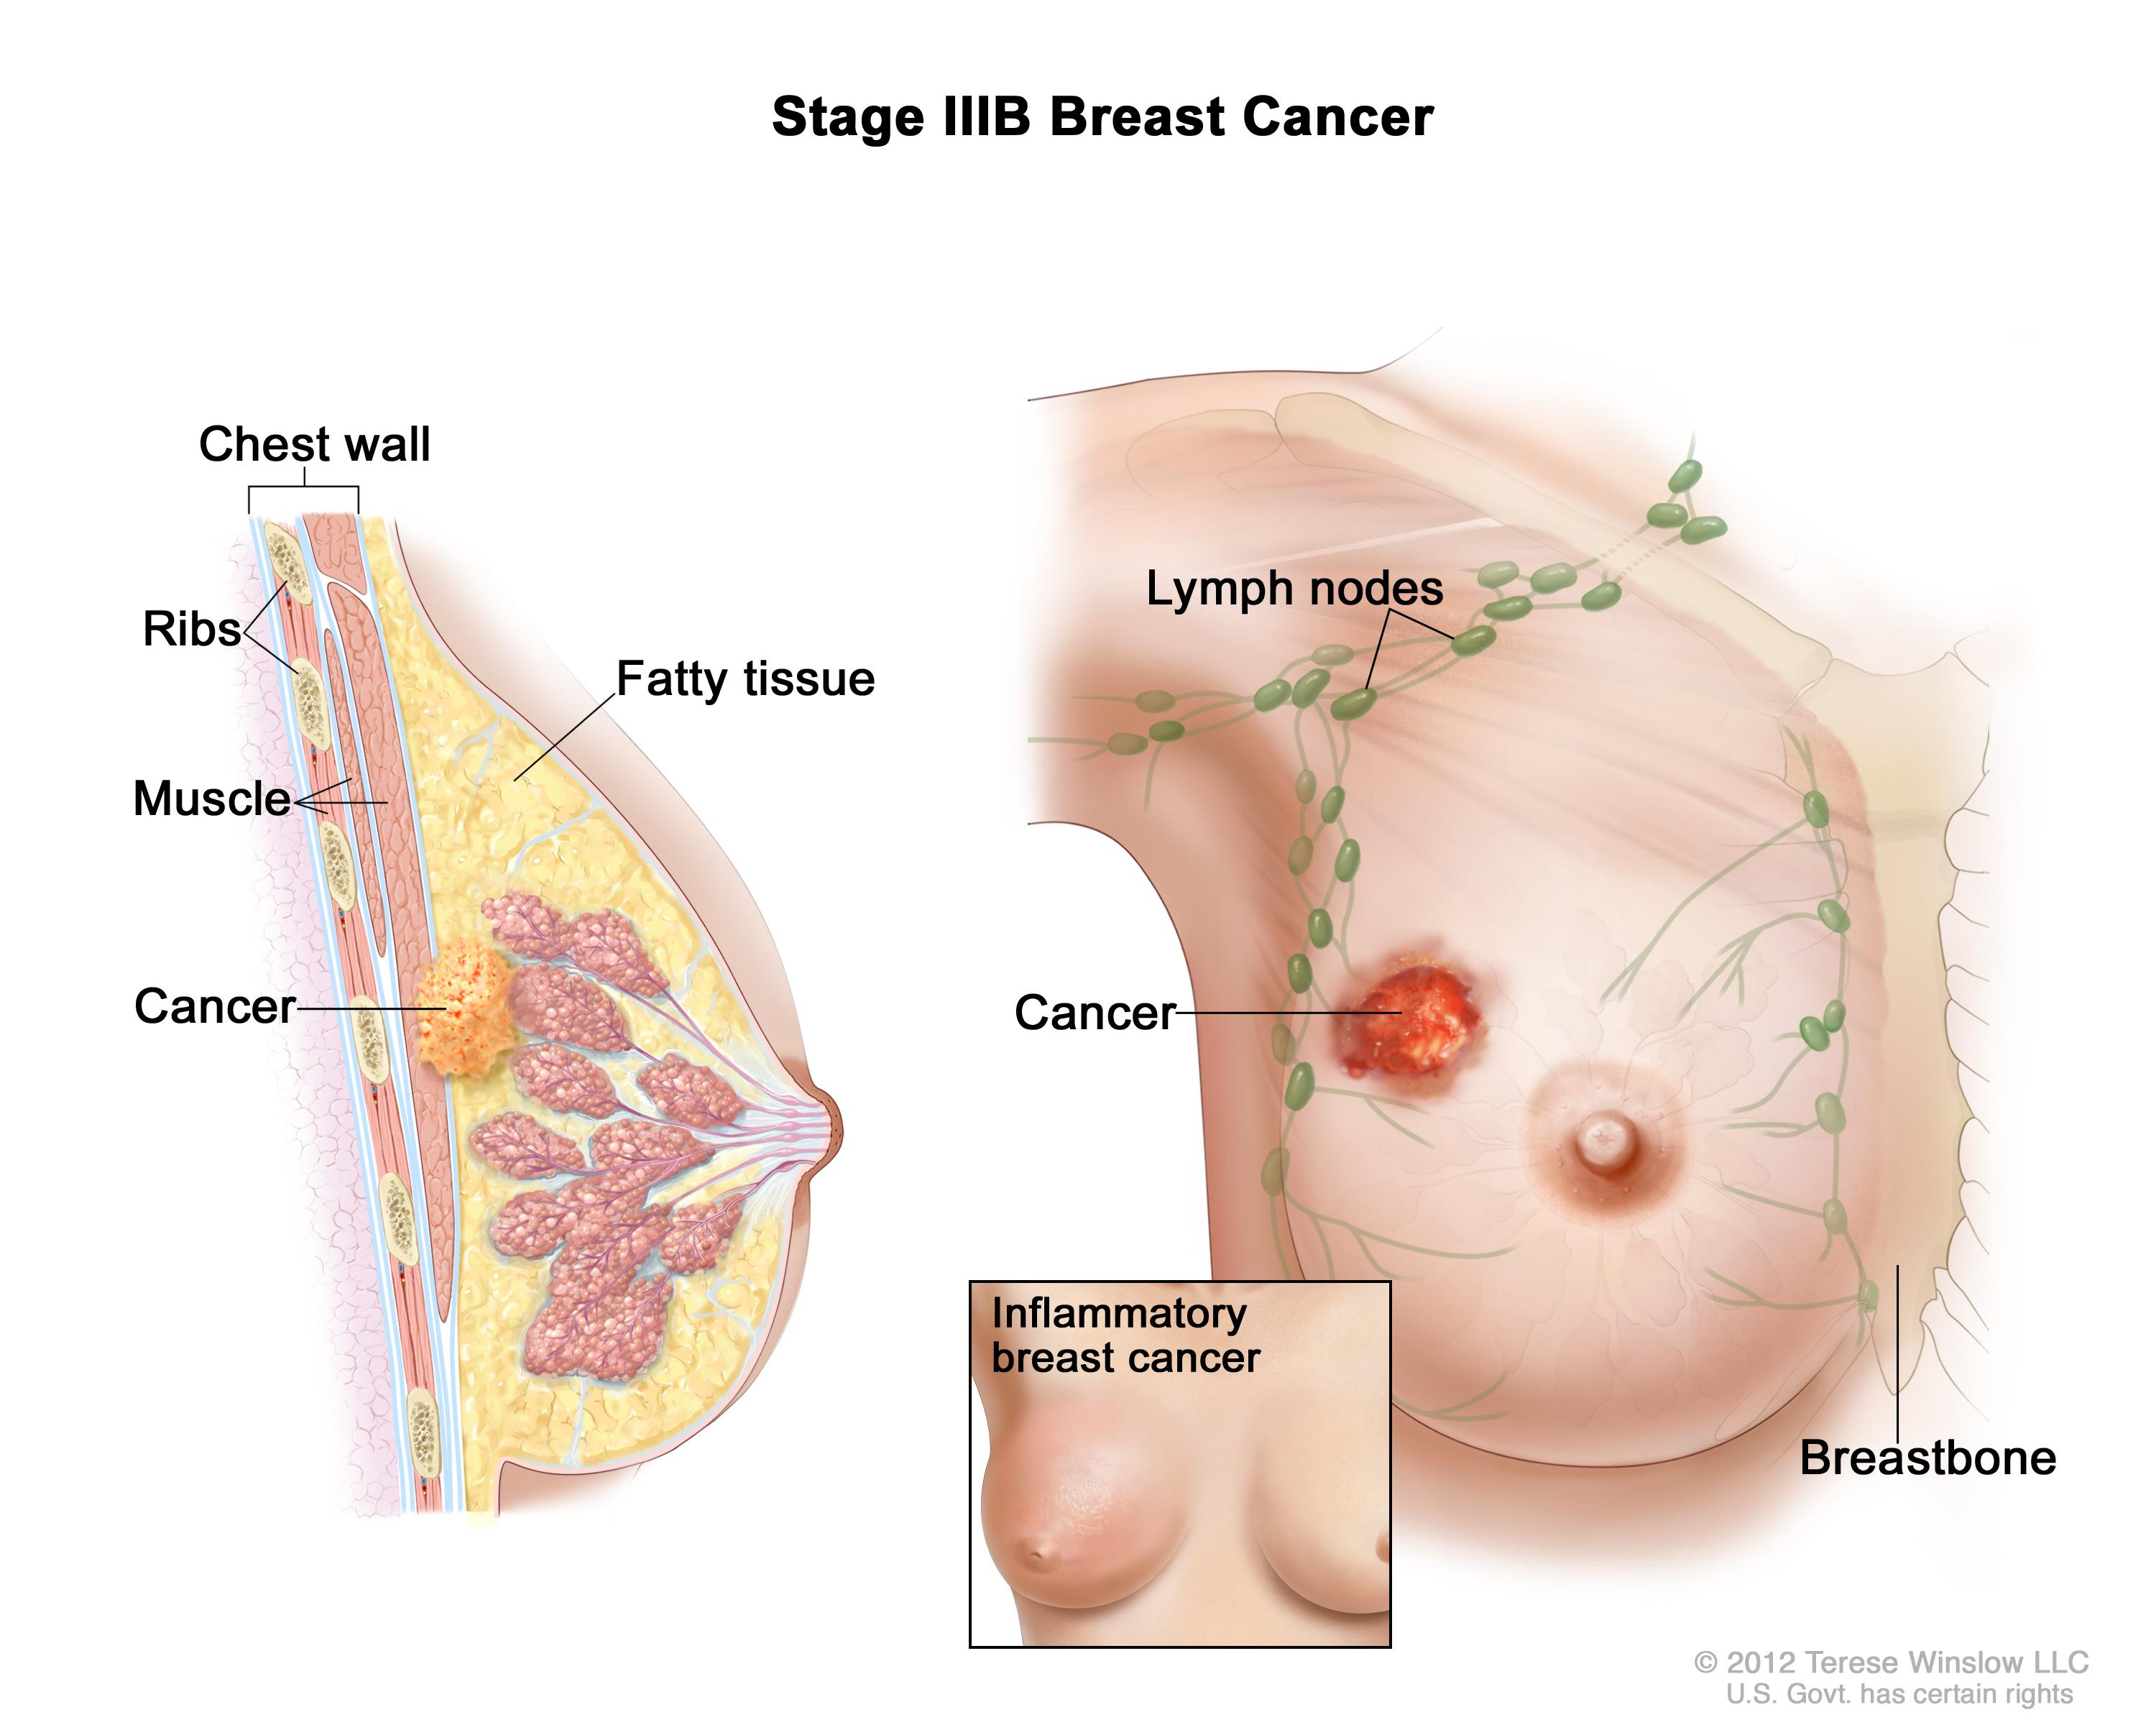 Breast exam after full hysterectomy